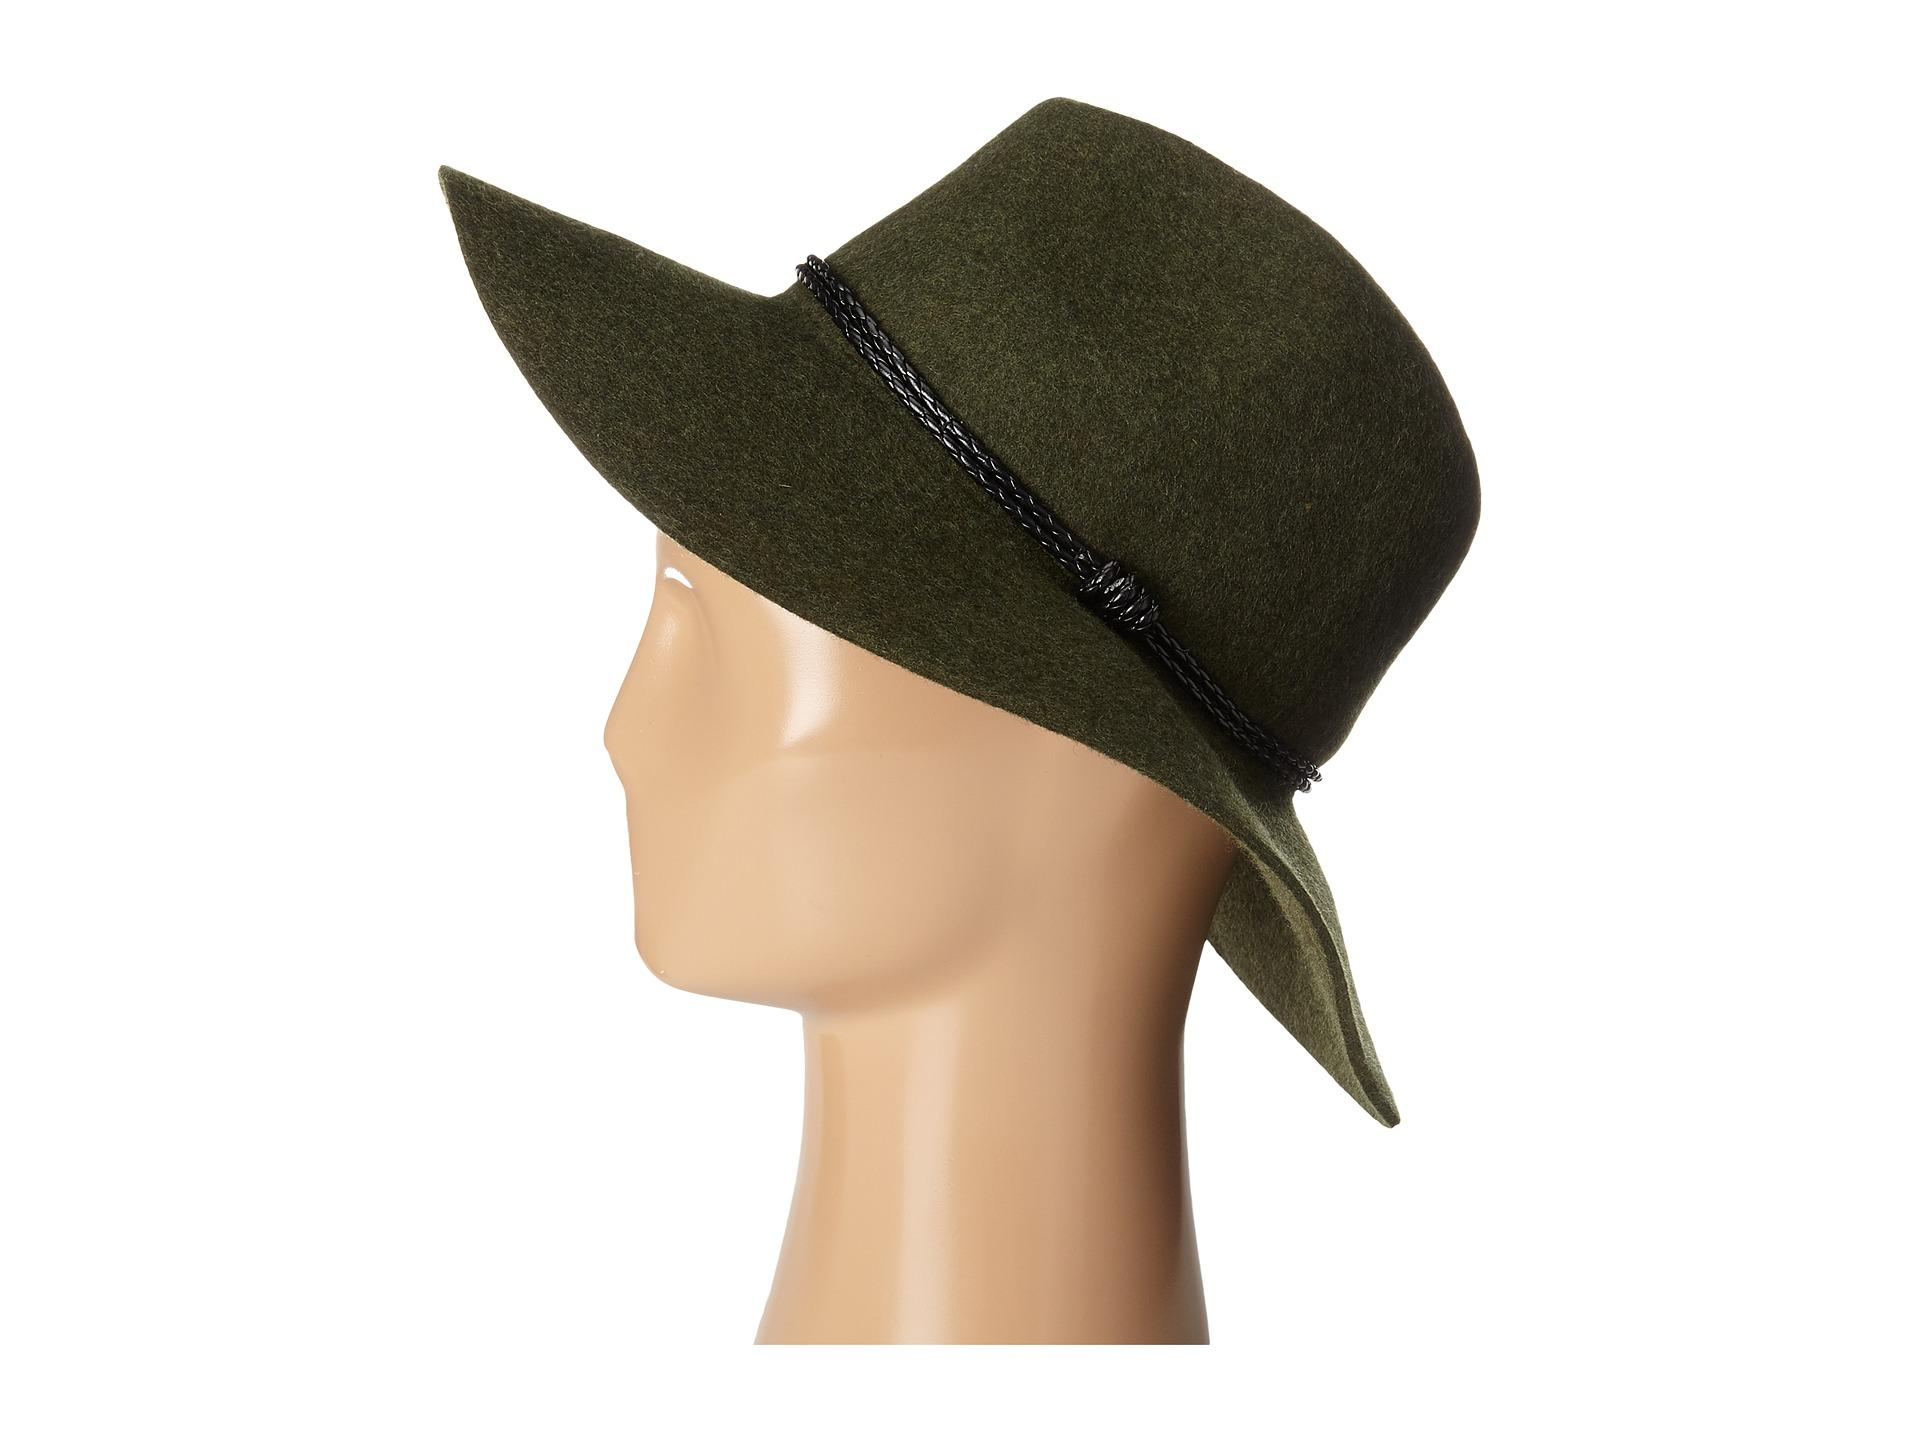 bcf636cb443 Lyst - San Diego Hat Company Wfh8017 Floppy With Pinch Crown And ...